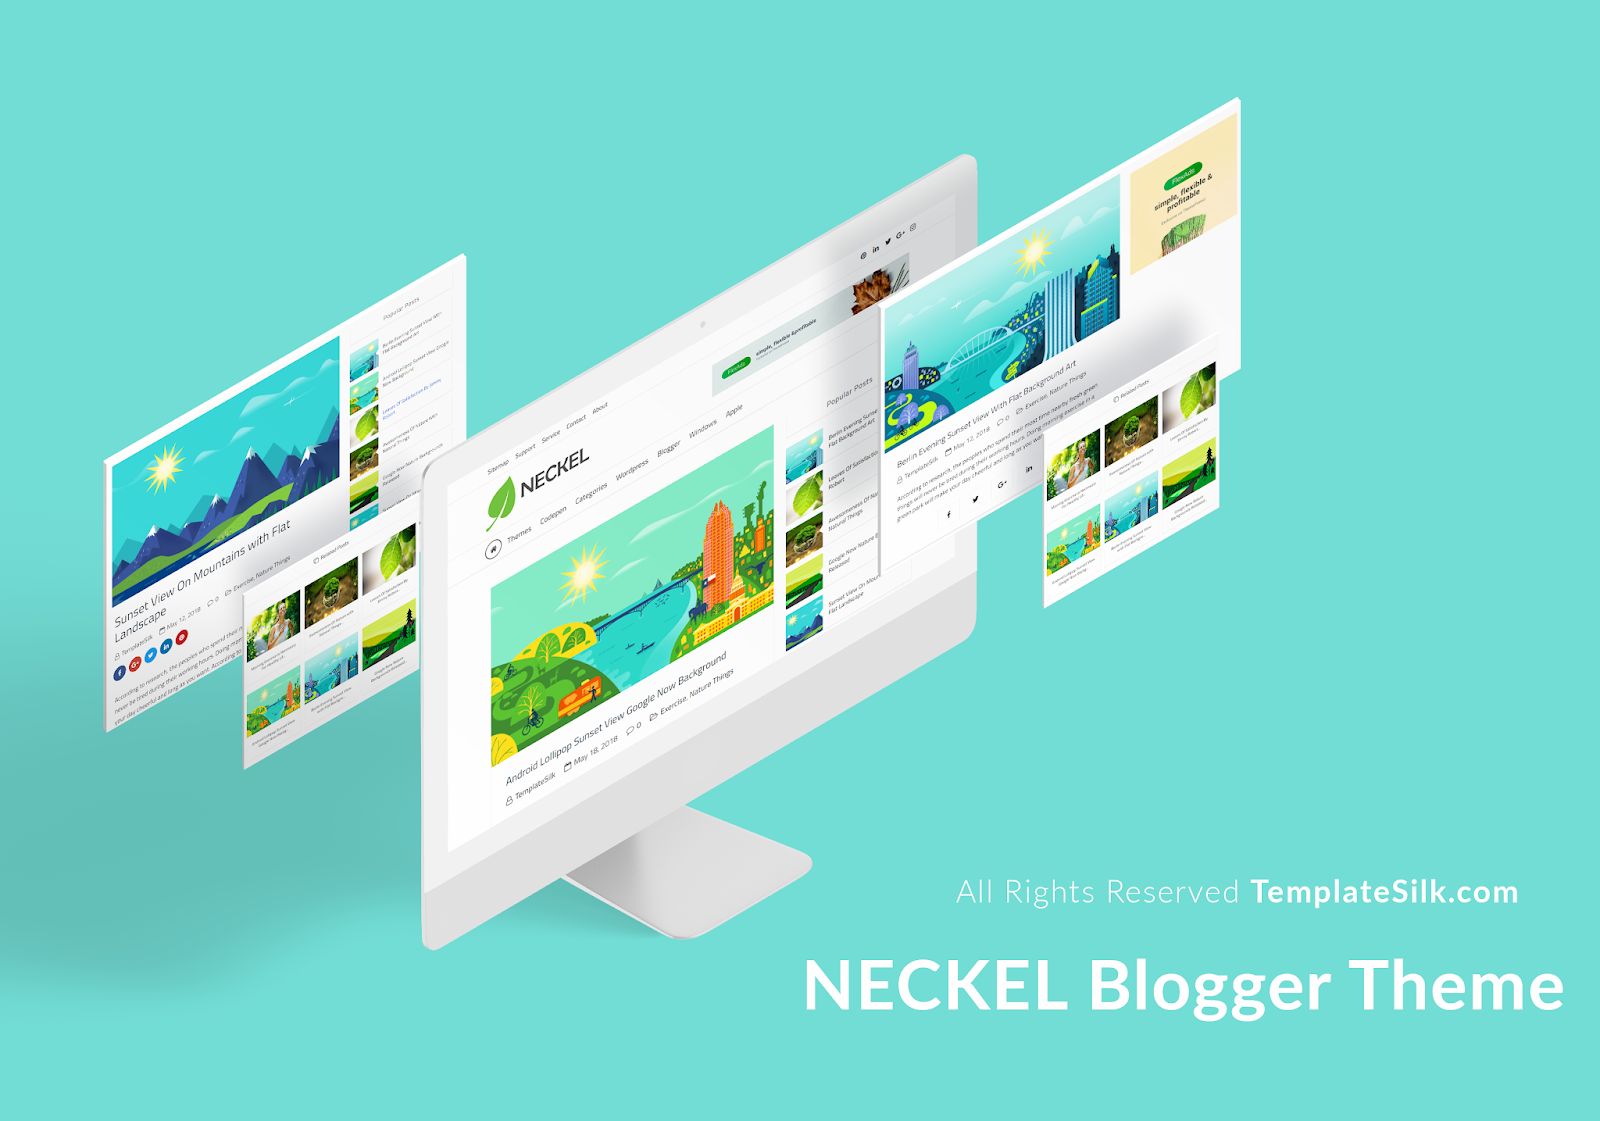 Neckel Blogger Theme